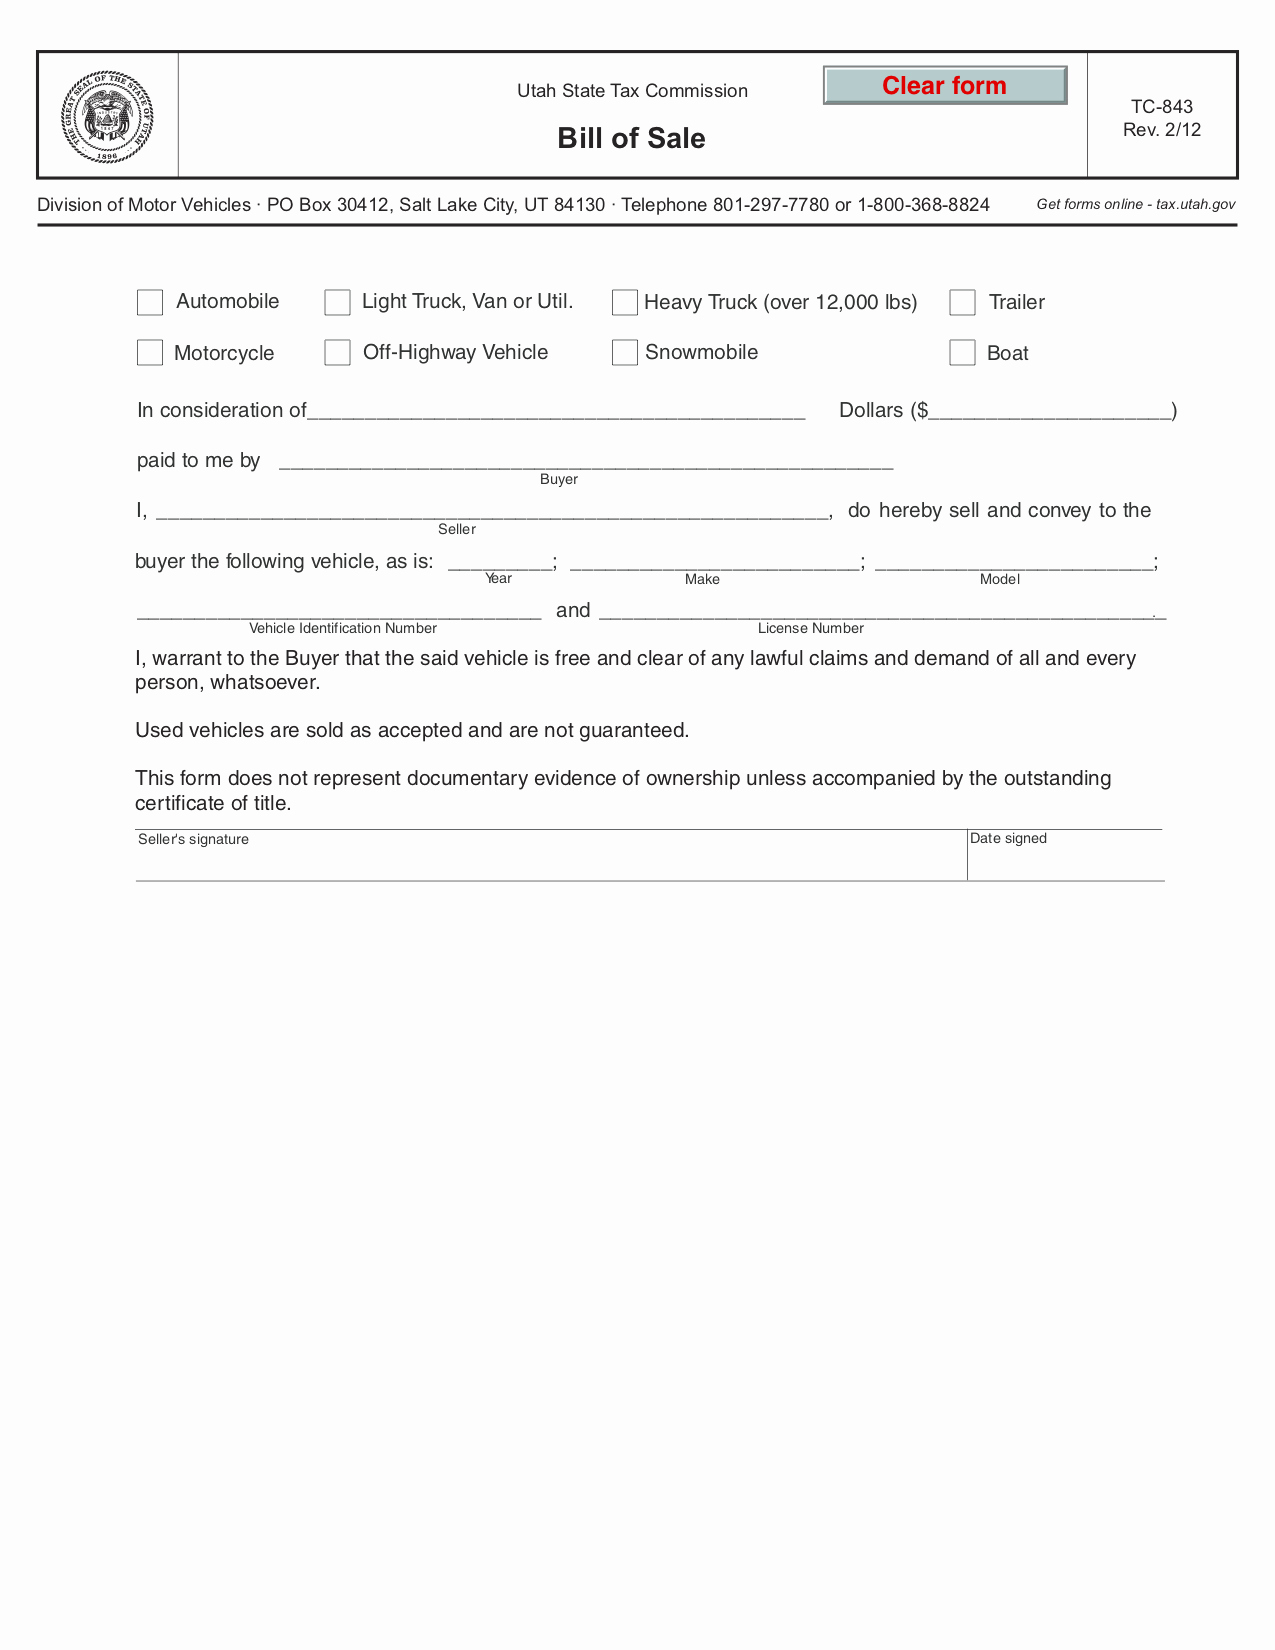 Template Bill Of Sale Car Inspirational Free Utah Bill Of Sale form Pdf Template